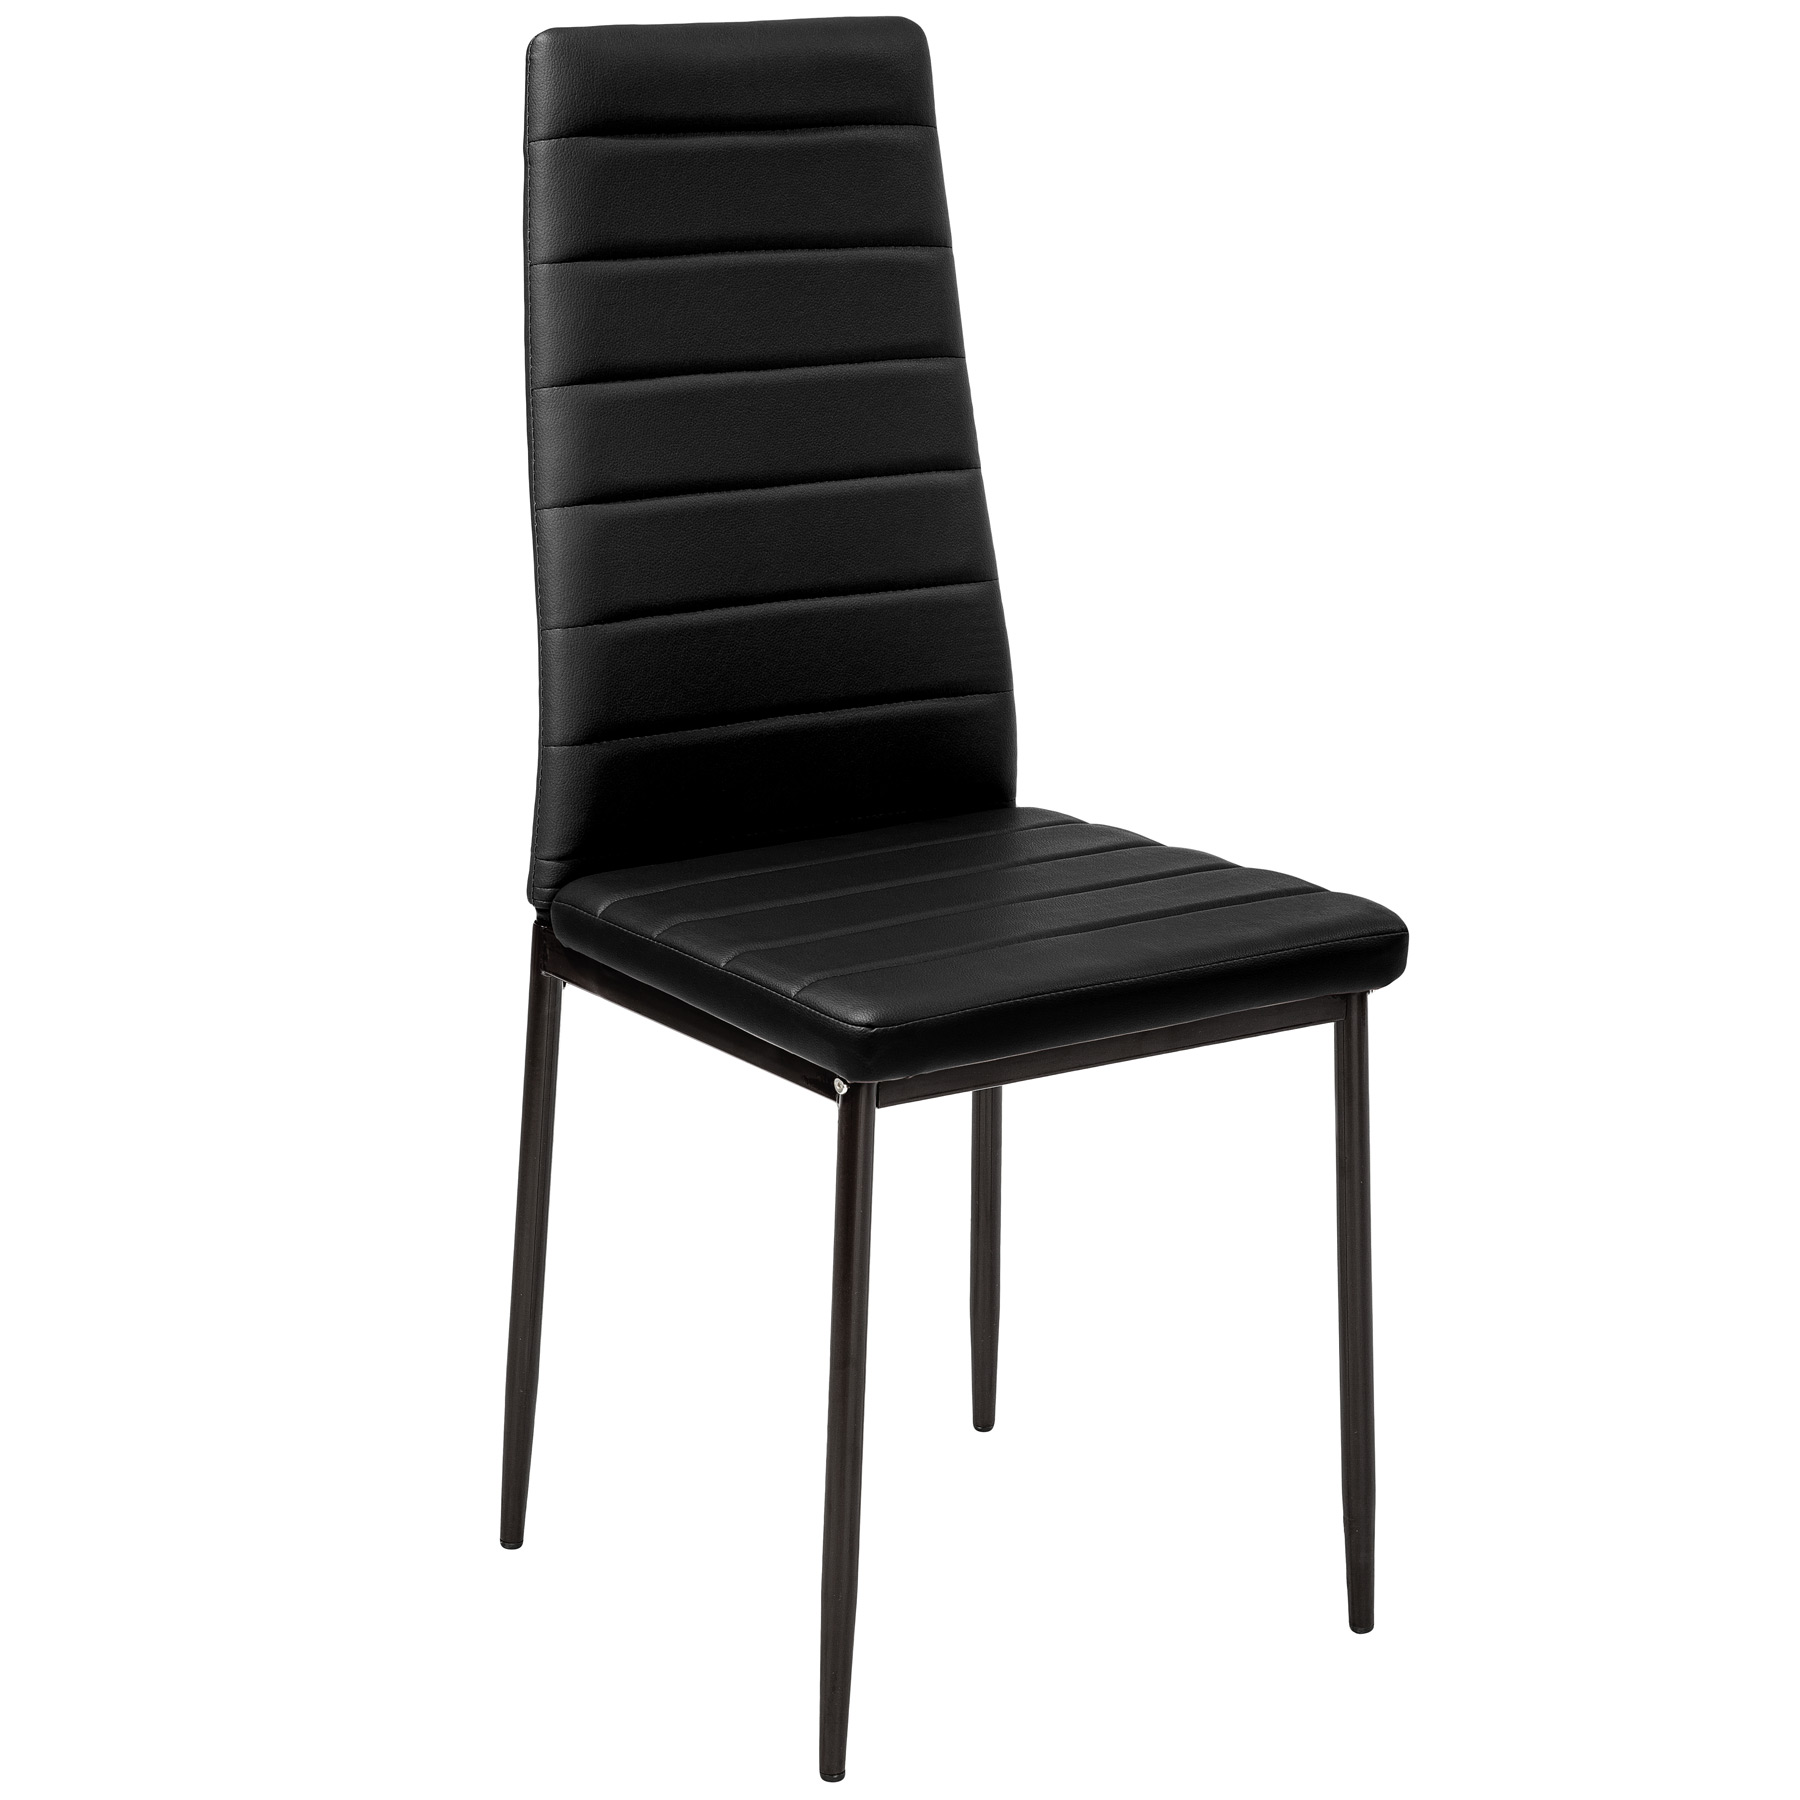 6 modern dining chairs dining room chair table faux leather furniture cozy black ebay - Modern leather dining room chairs ...